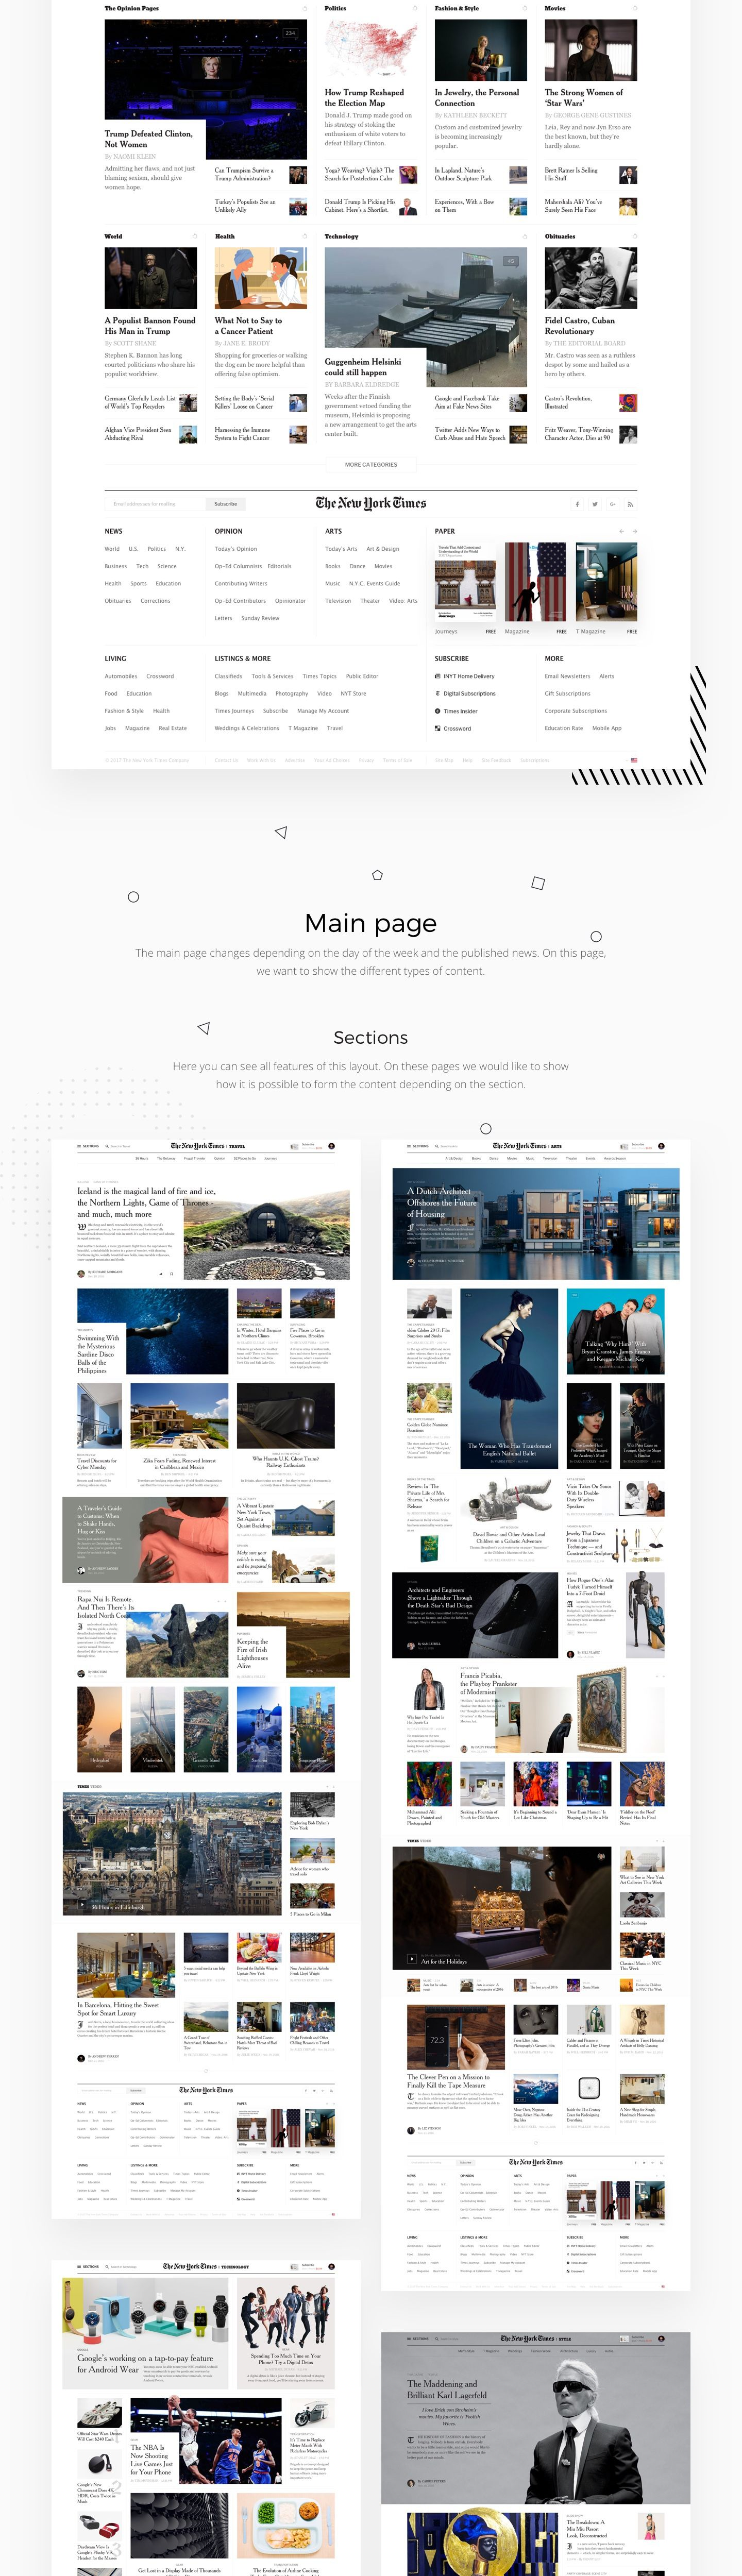 Editorial Design The New York Times Redesign Concept Editorial Design News Web Design Web Design Inspiration